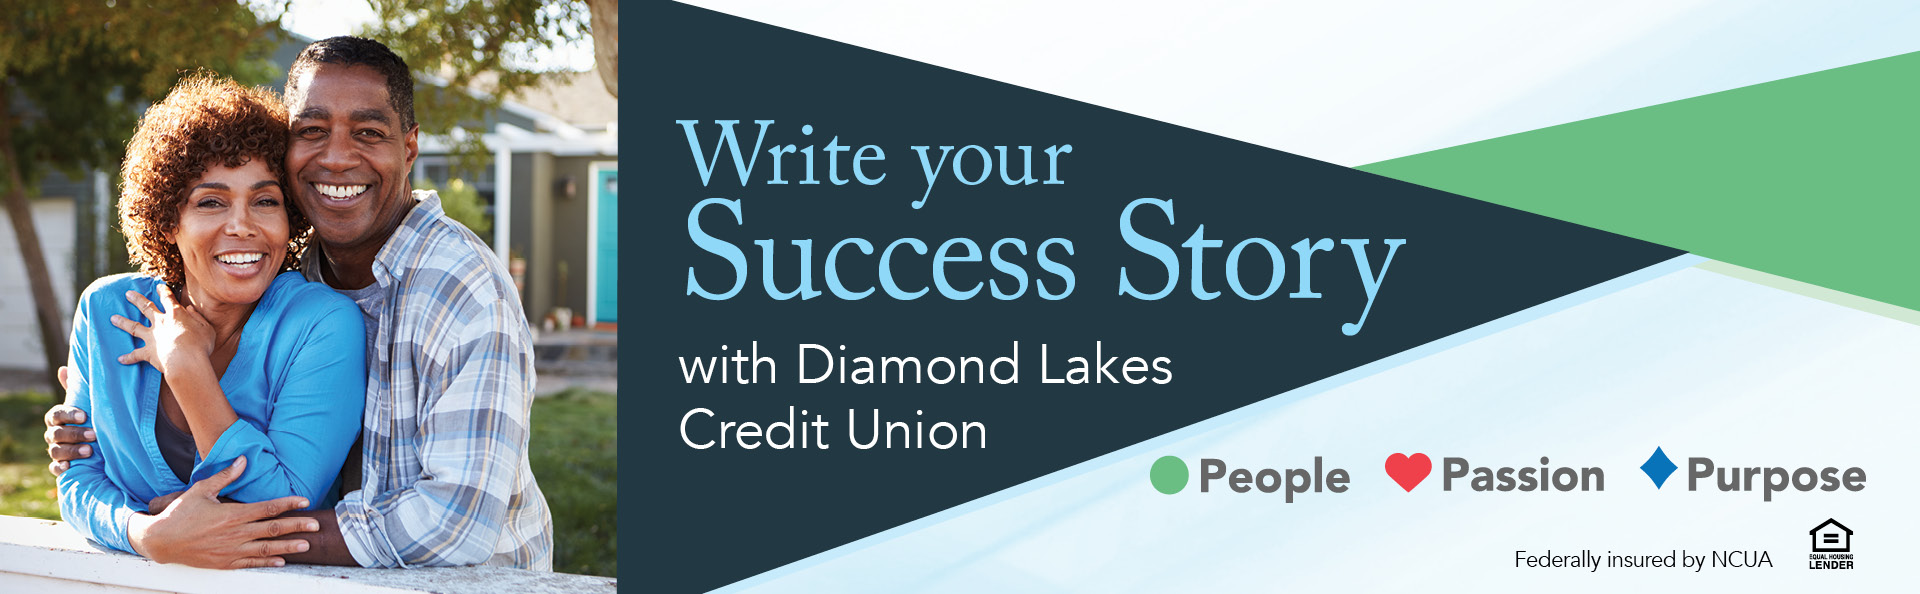 Write your success story with Diamond Lakes. Learn more.